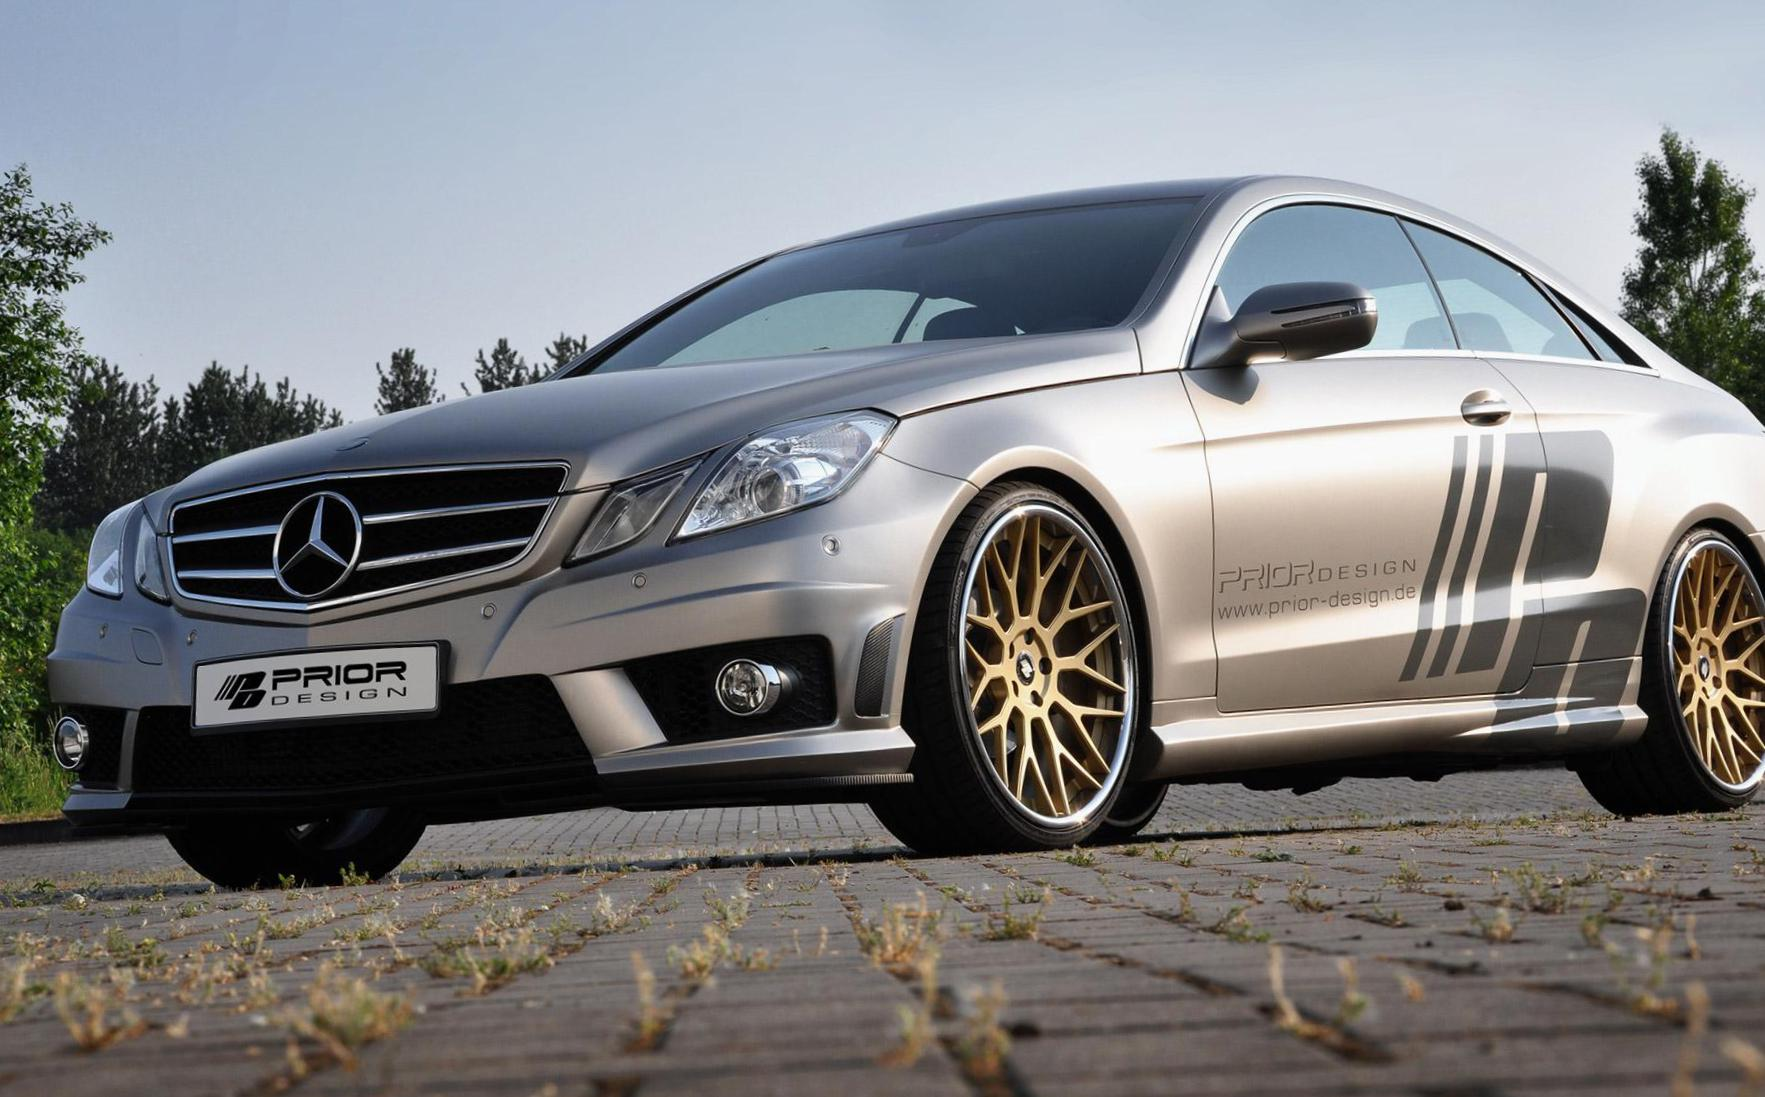 Mercedes E-Class (C207) approved 2005